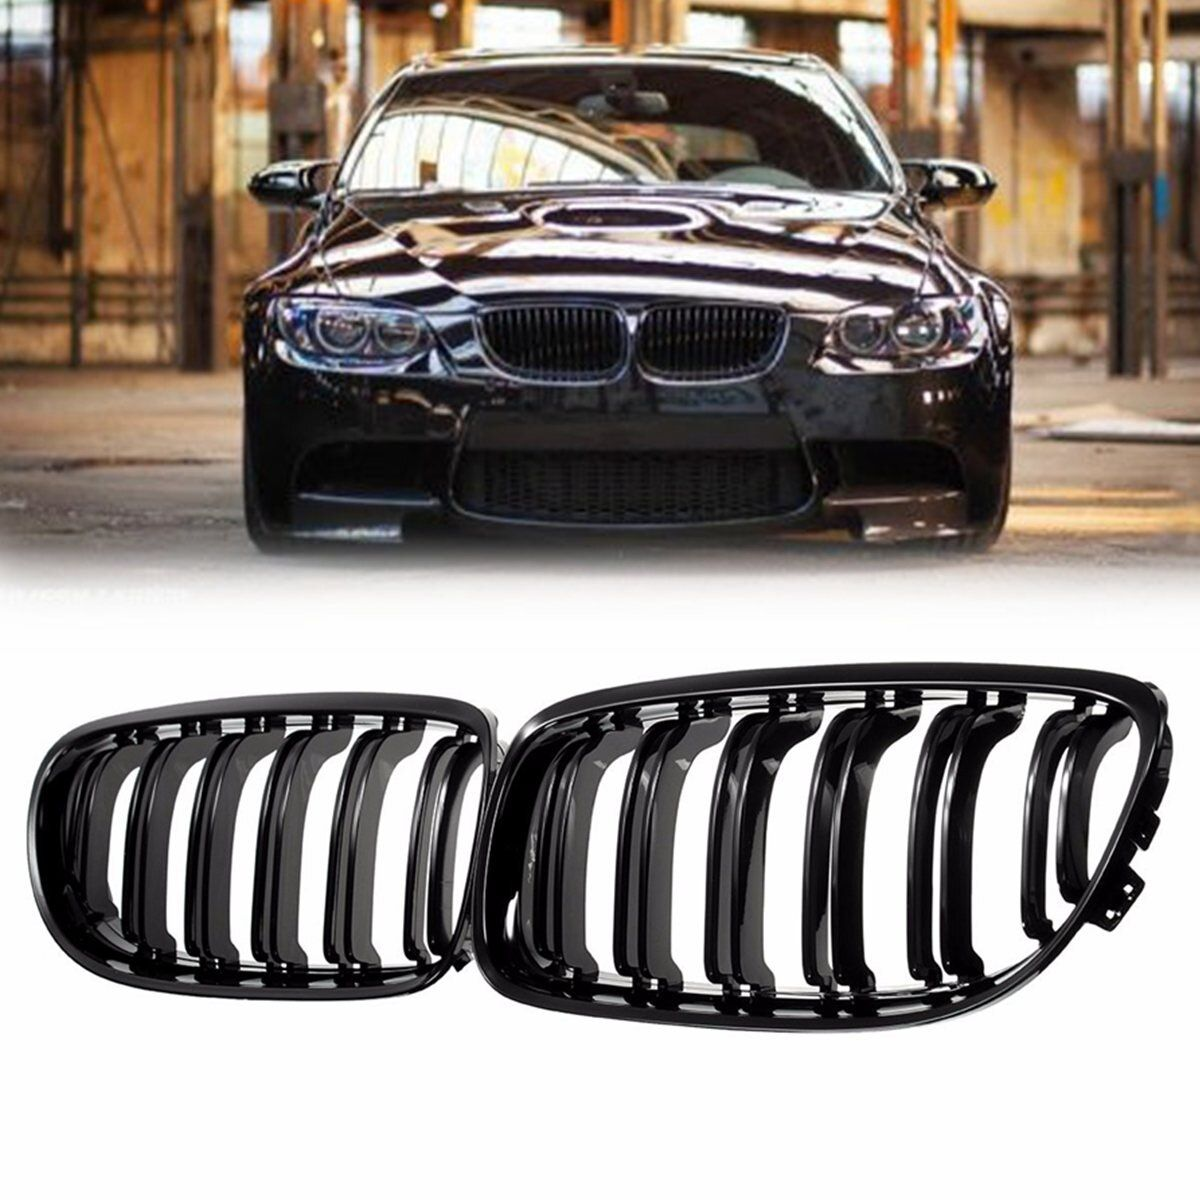 Pair Gloss Black Car Front Grille Grill For BMW E90 LCI 3-Series Sedan/Wagon 2009 2010 2011